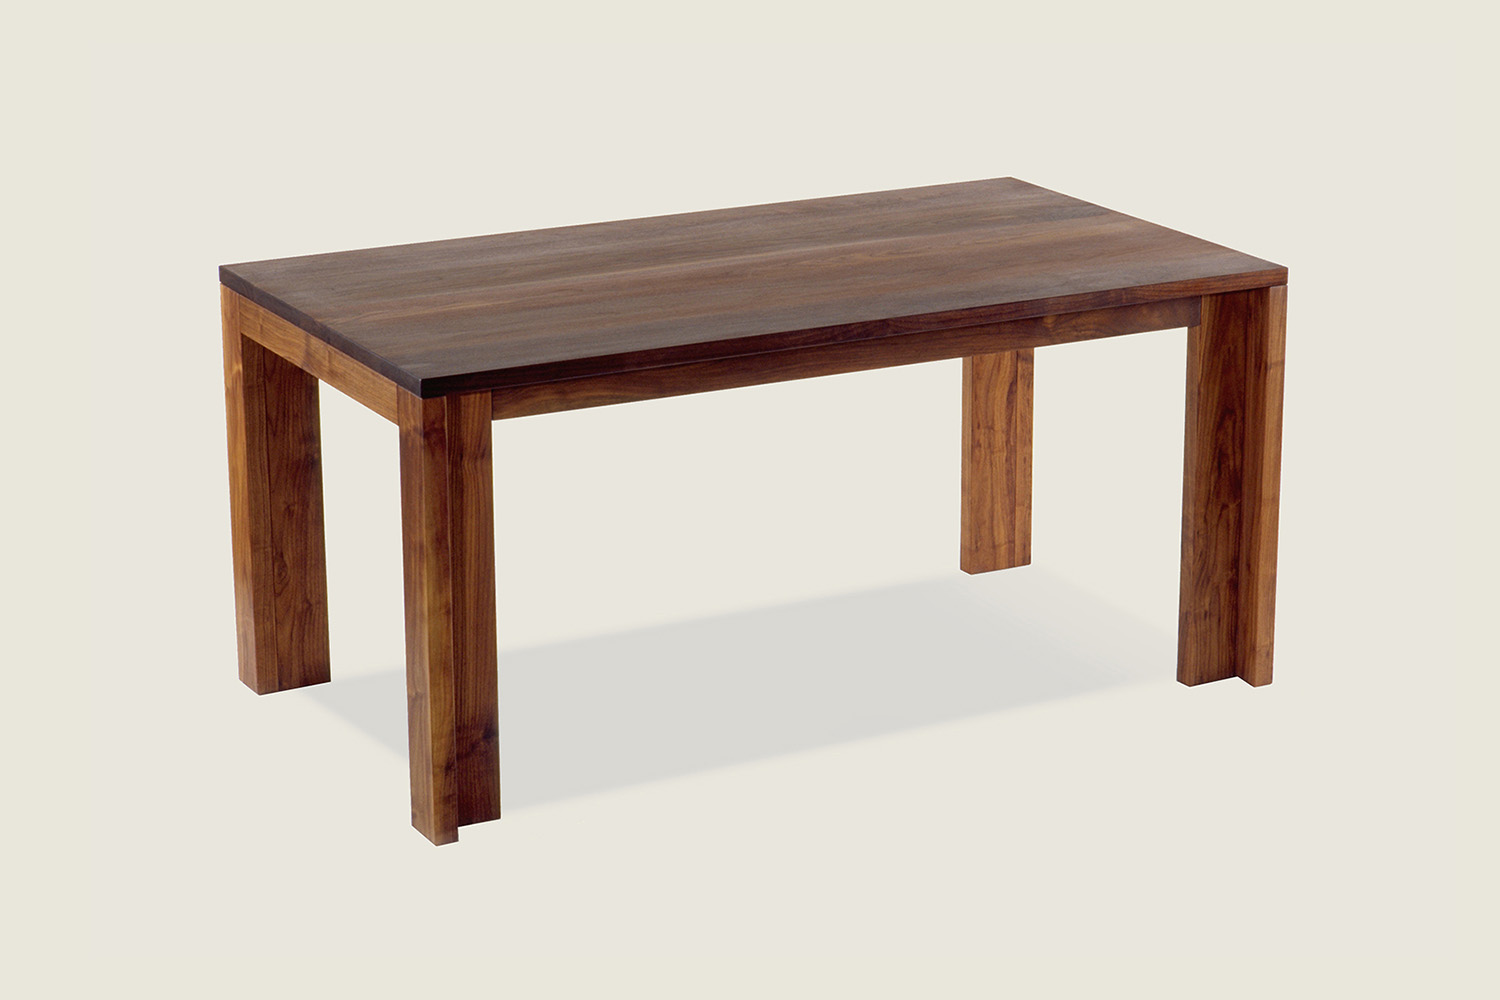 Insight Dining Table in solid oak - Speke Klein